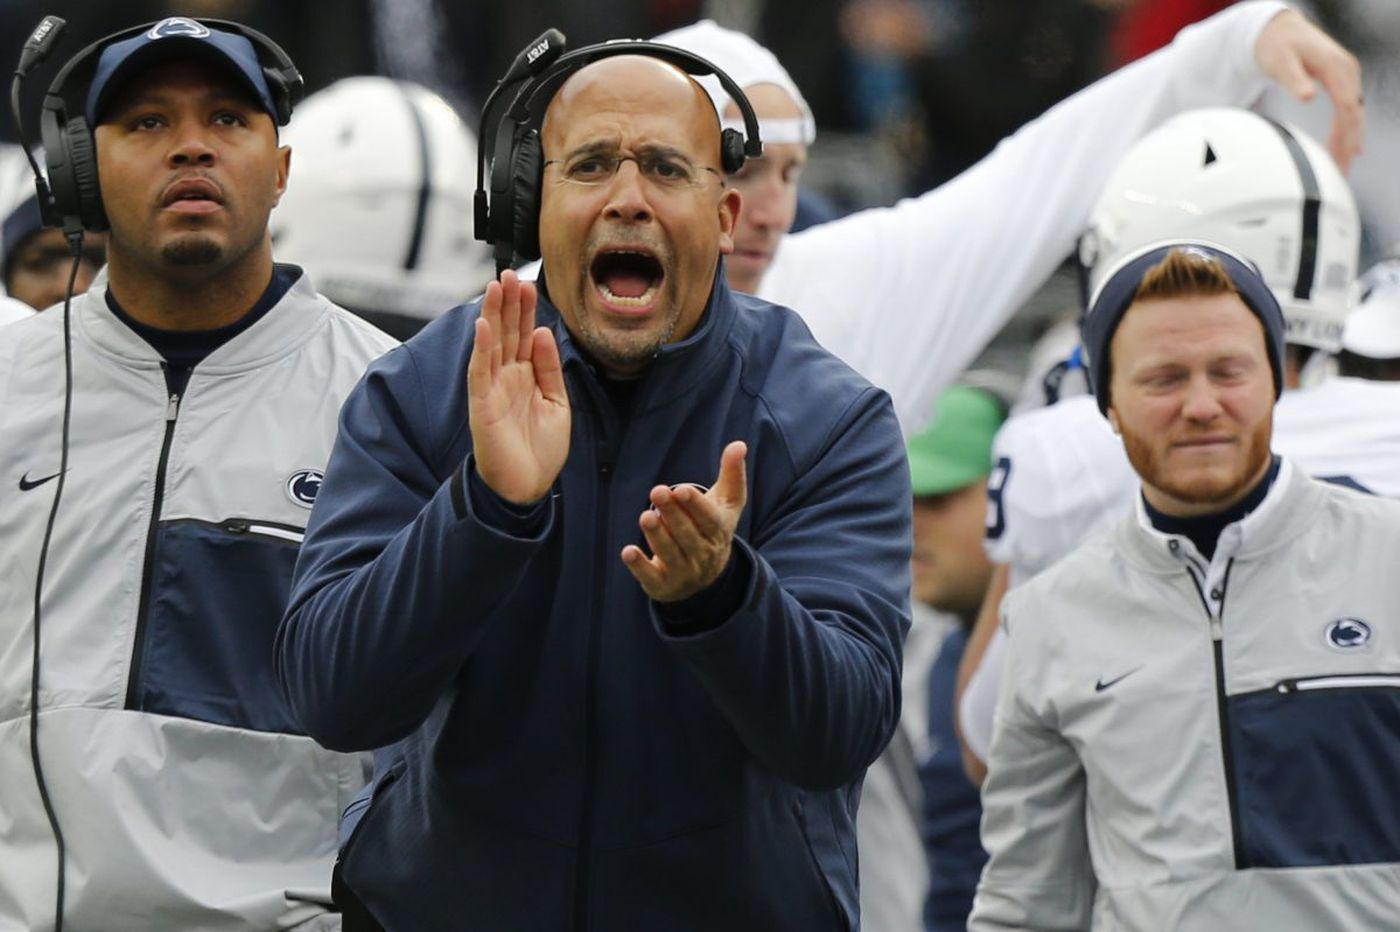 Penn State's Blue-White game a chance to find team's next impact player